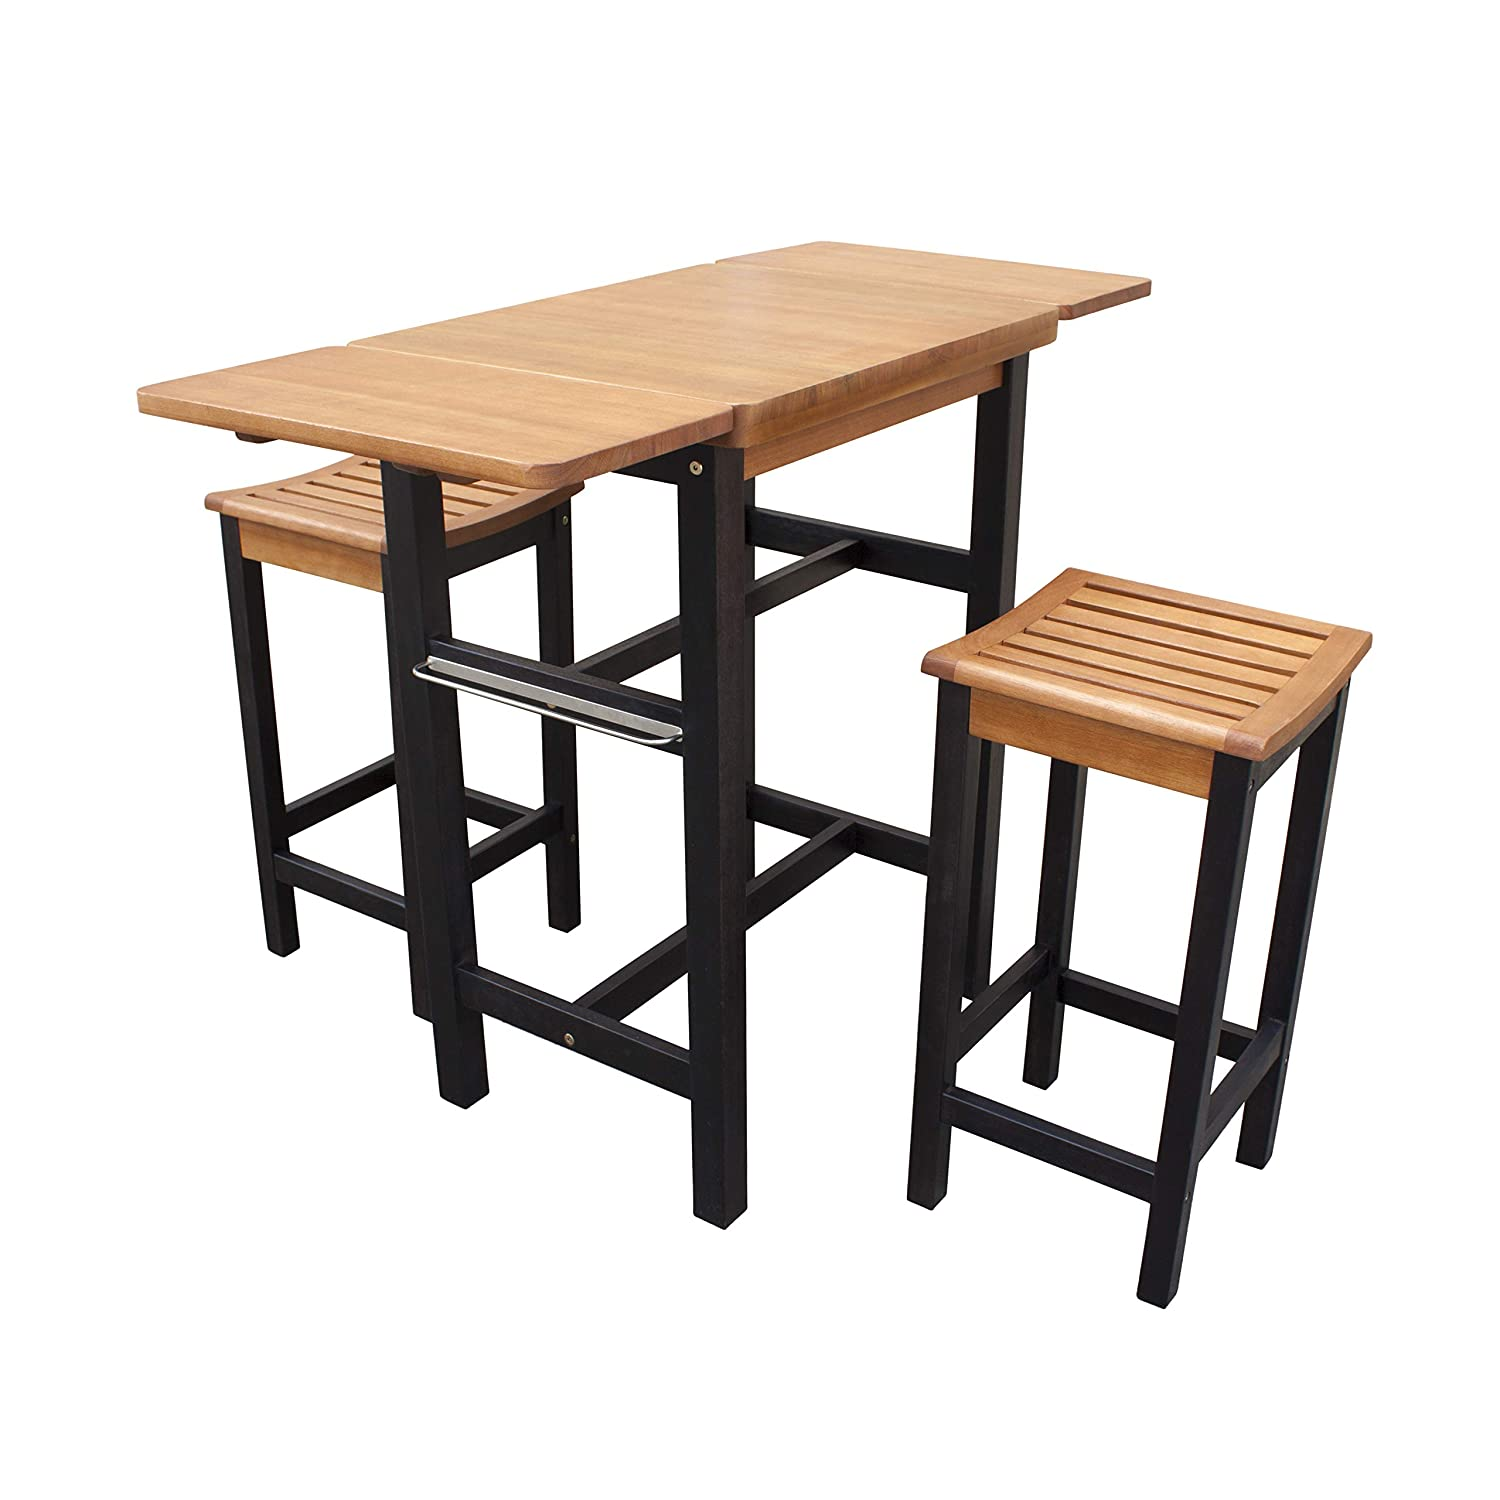 Buy Merry Garden Kitchen Island Table Two Stool Set Natural Online At Low Prices In India Amazon In